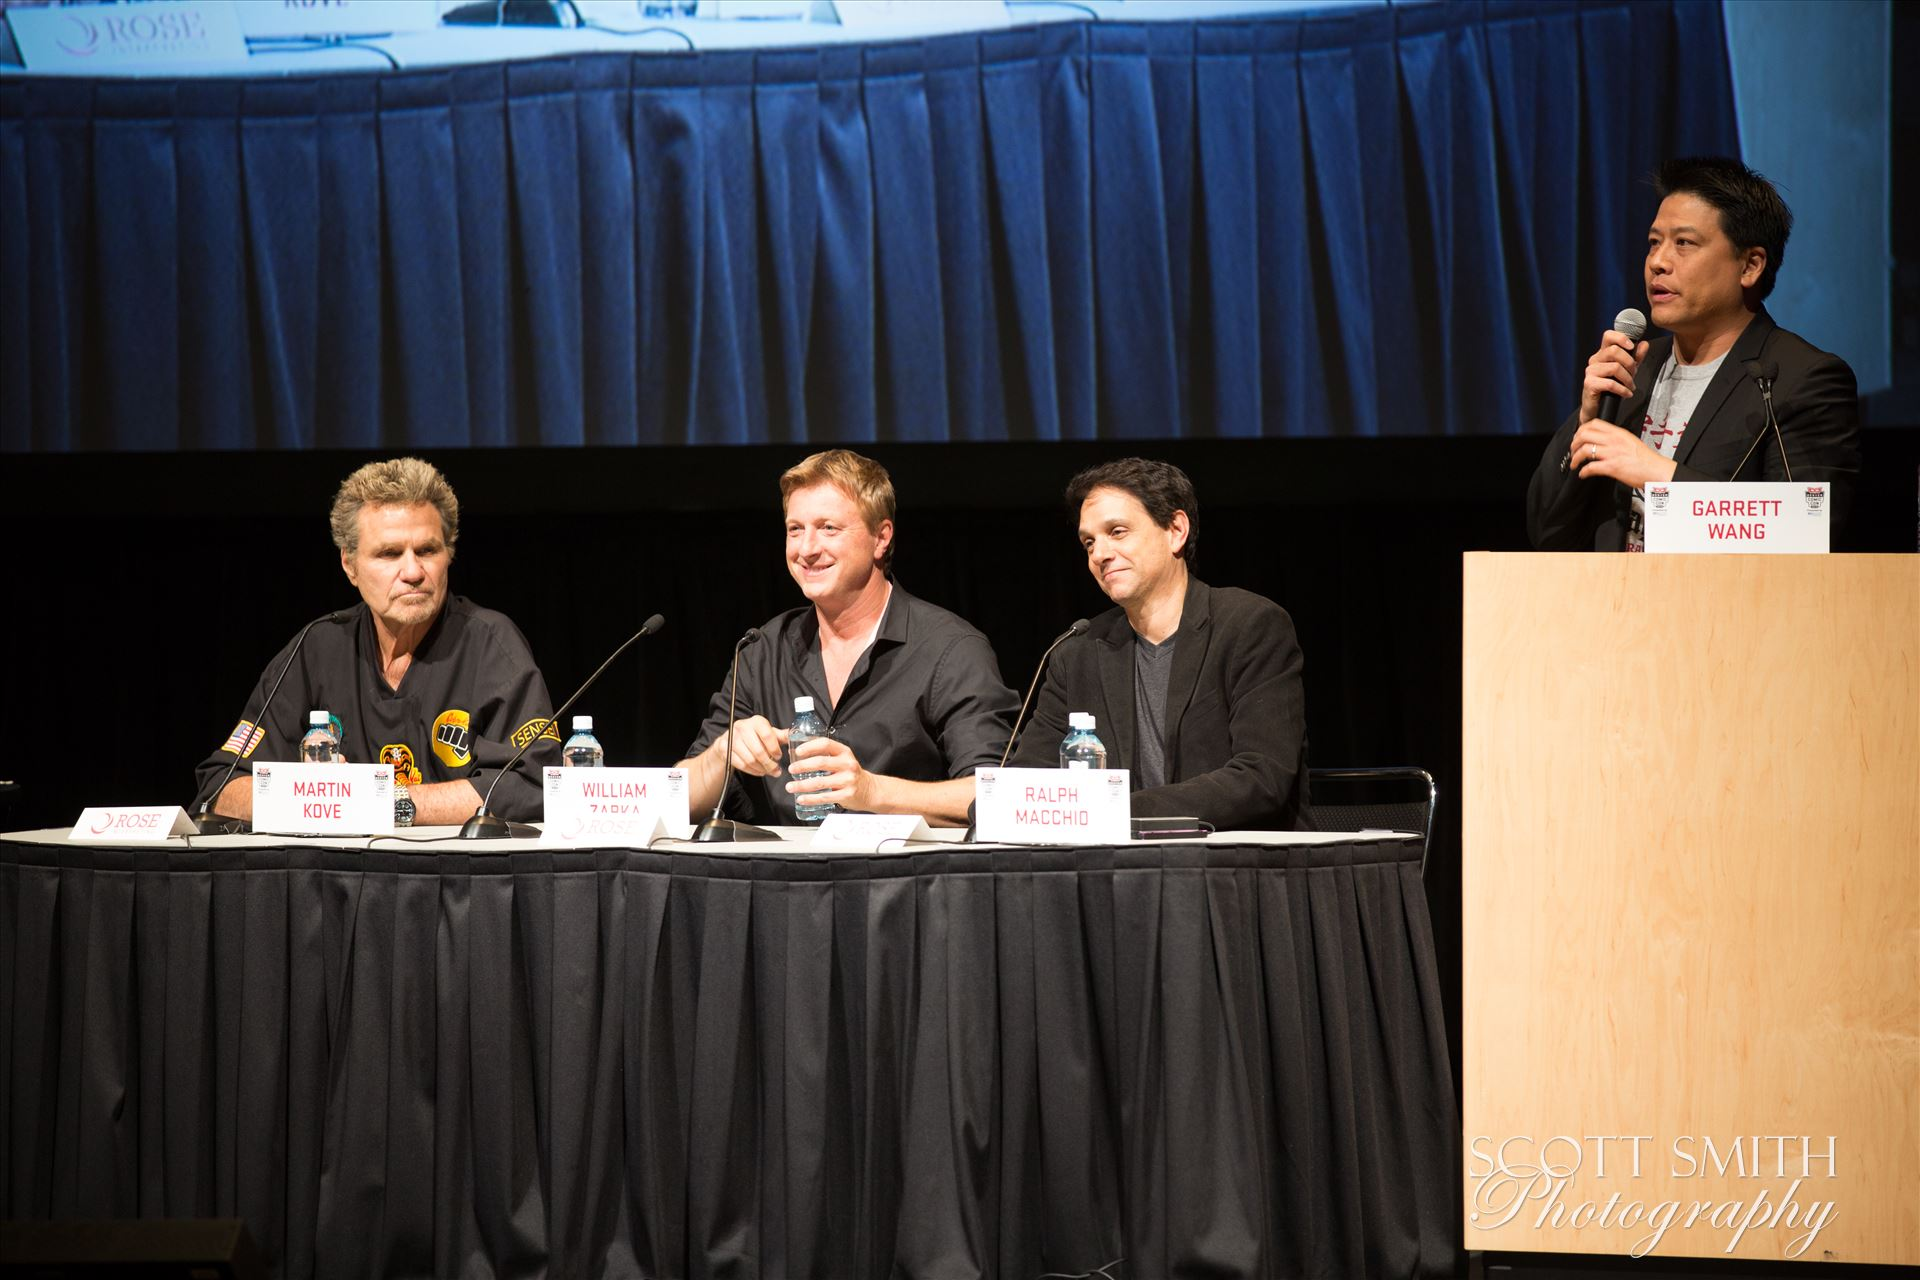 Denver Comic Con 2016 37 - Denver Comic Con 2016 at the Colorado Convention Center. Garrett Wang, Ralph Macchio, Martin Kove and William Zabka. by Scott Smith Photos